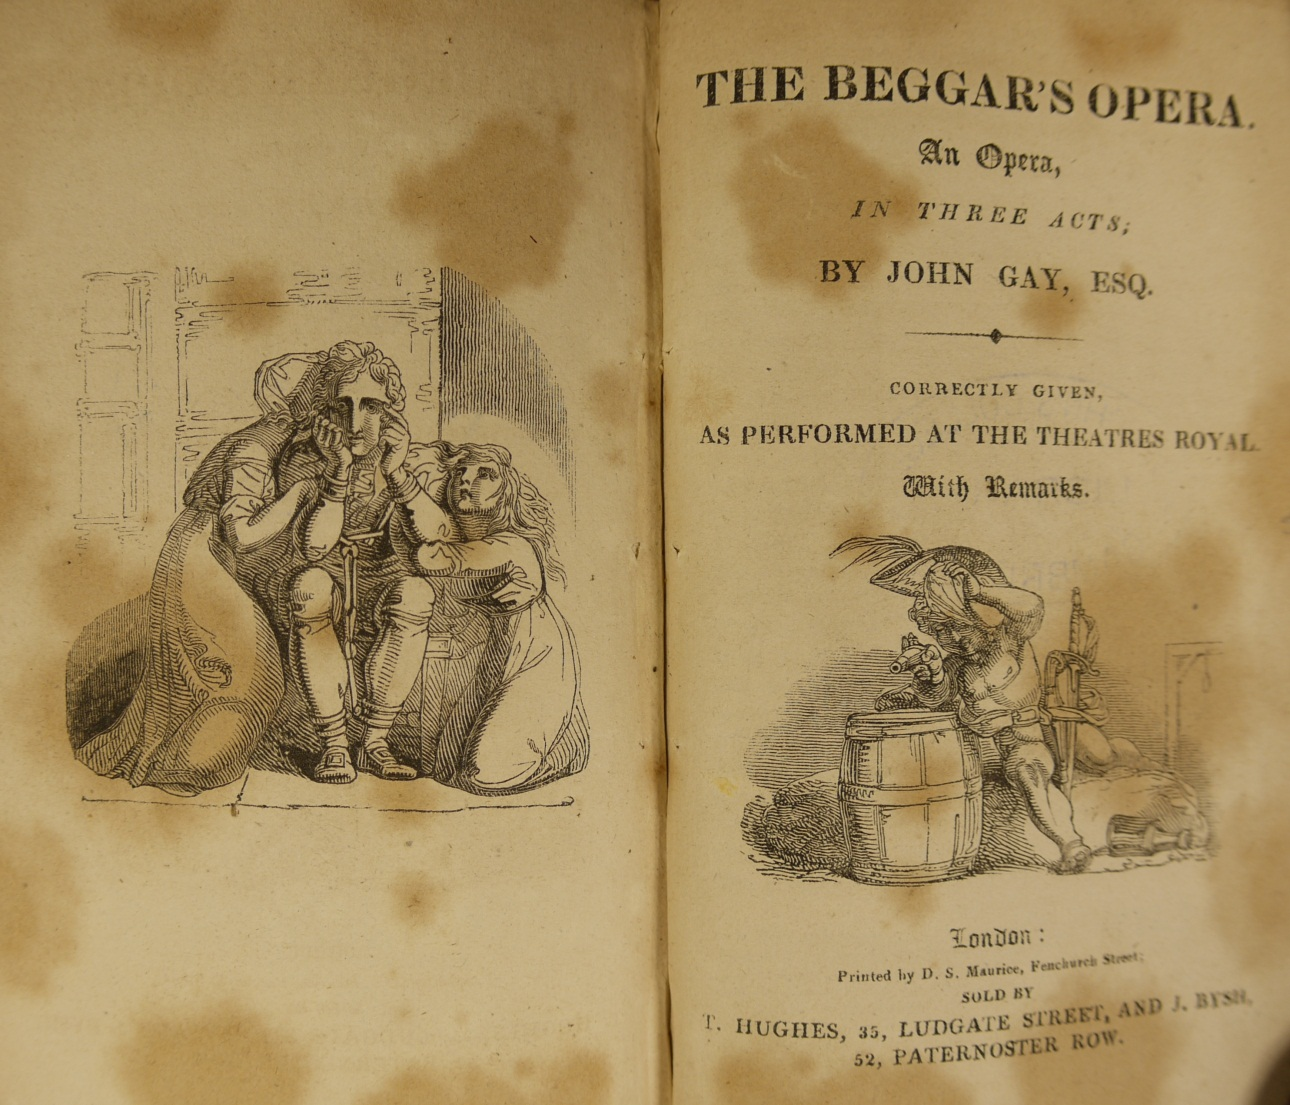 Cover page for the libretto of The Beggar's Opera